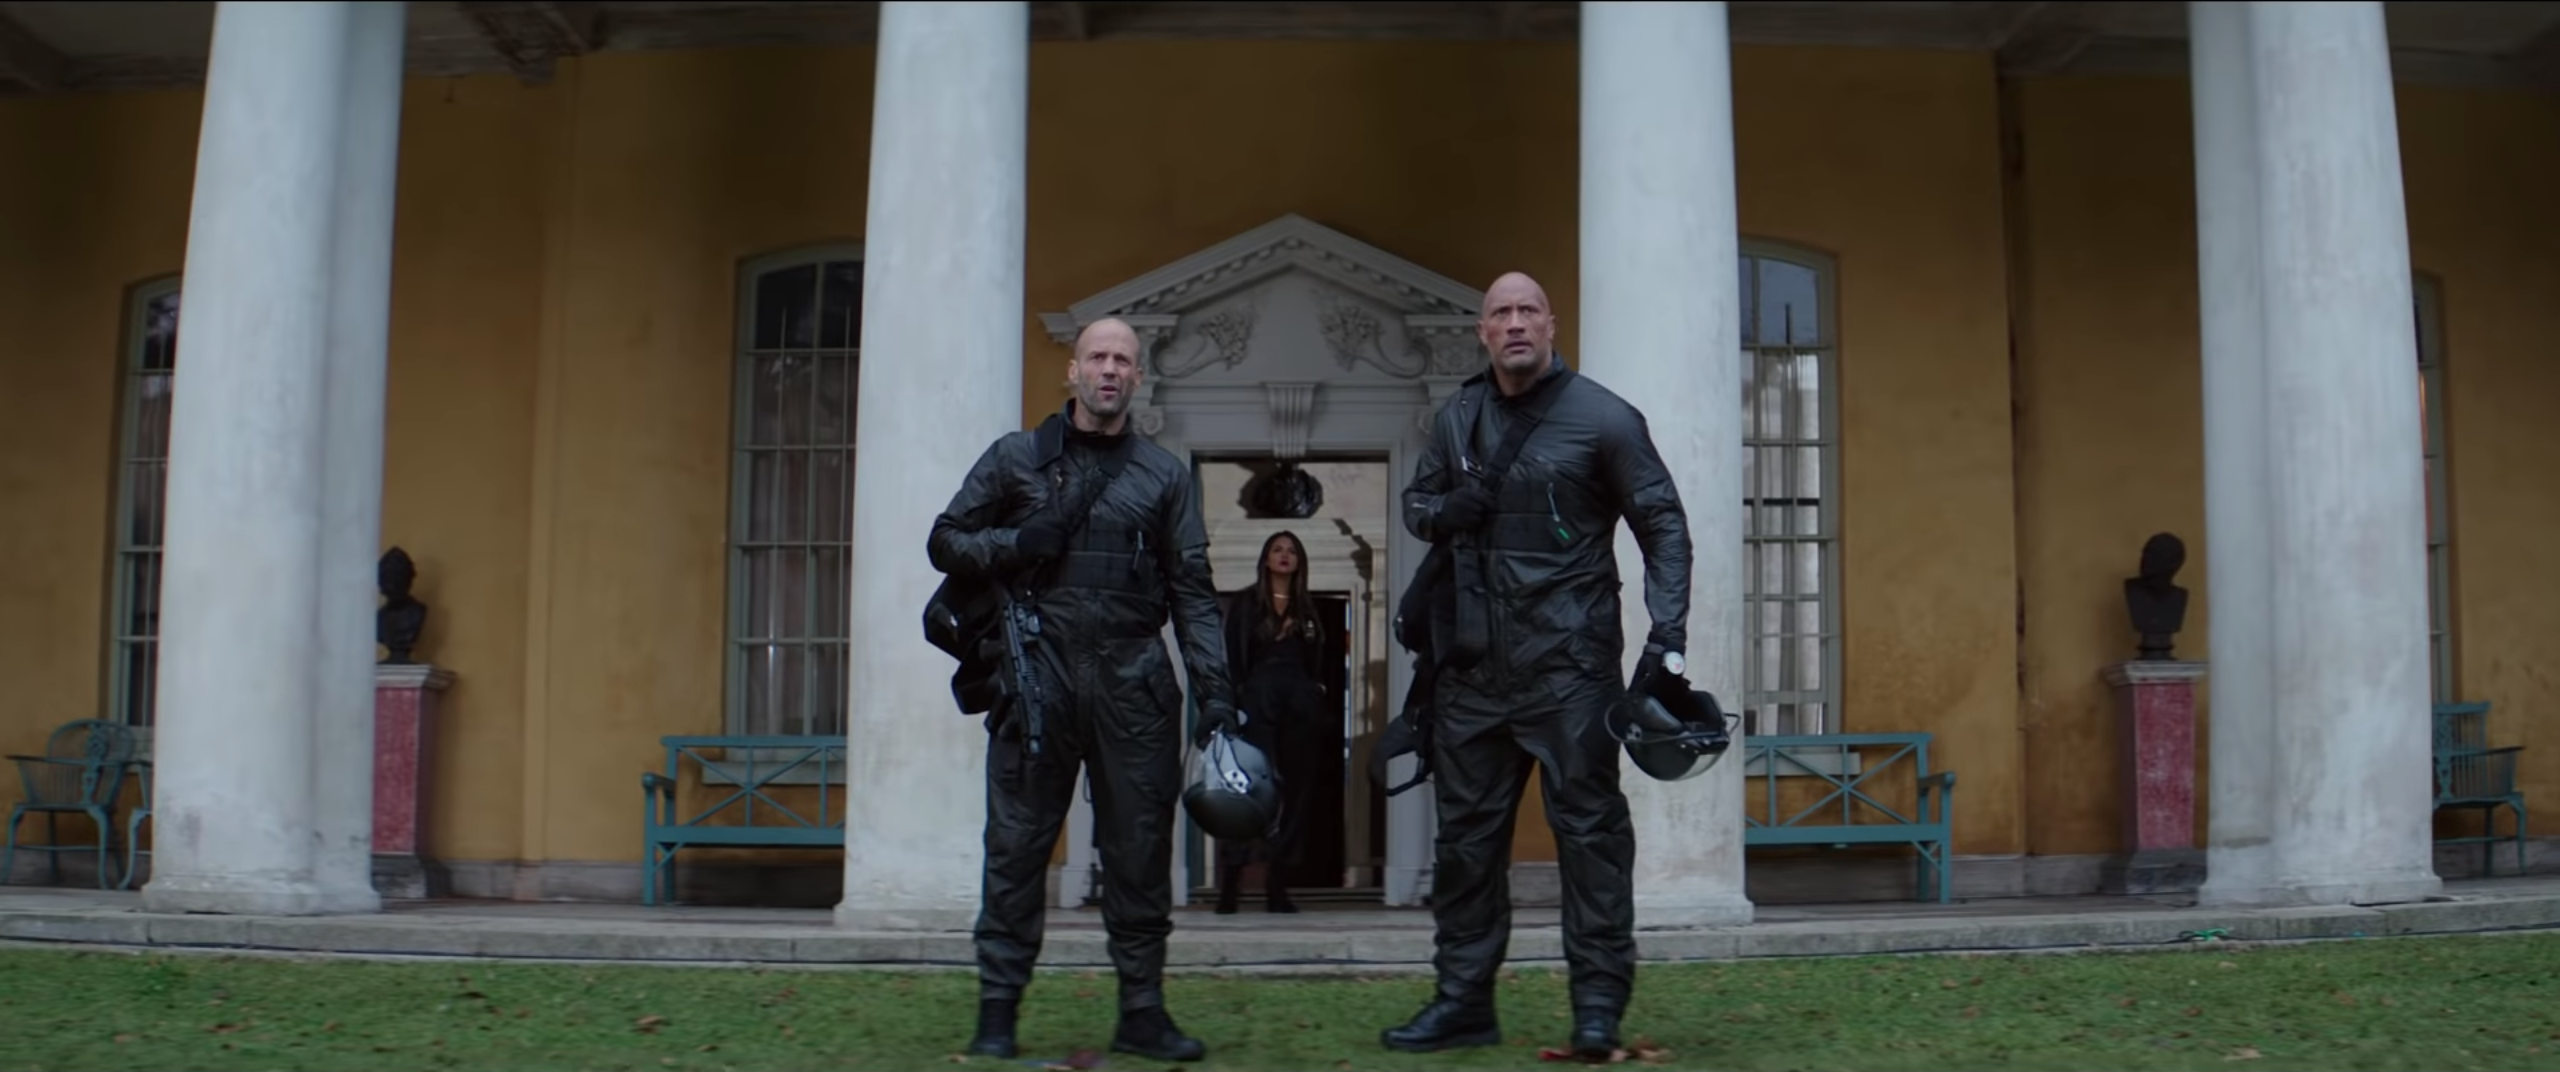 Jason Statham and The Rock in flight suits